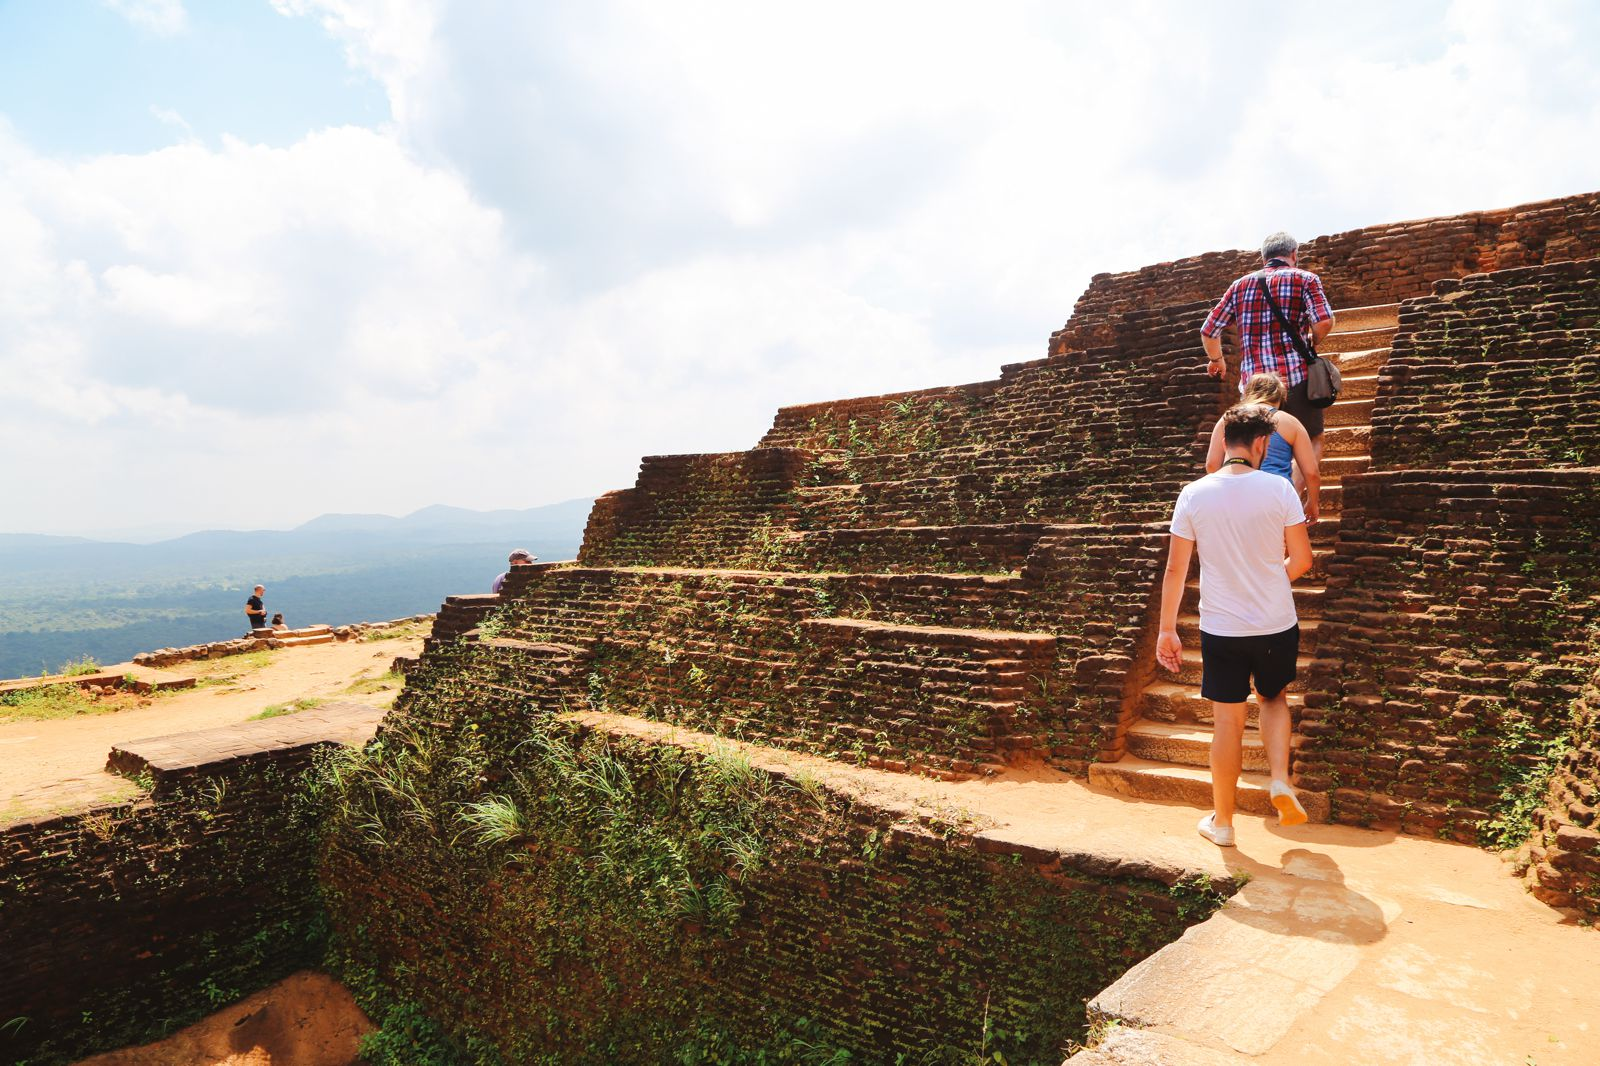 The Complete Guide To Climbing Sri Lanka's UNESCO World Heritage Site Of Sigiriya - Lion Rock (34)